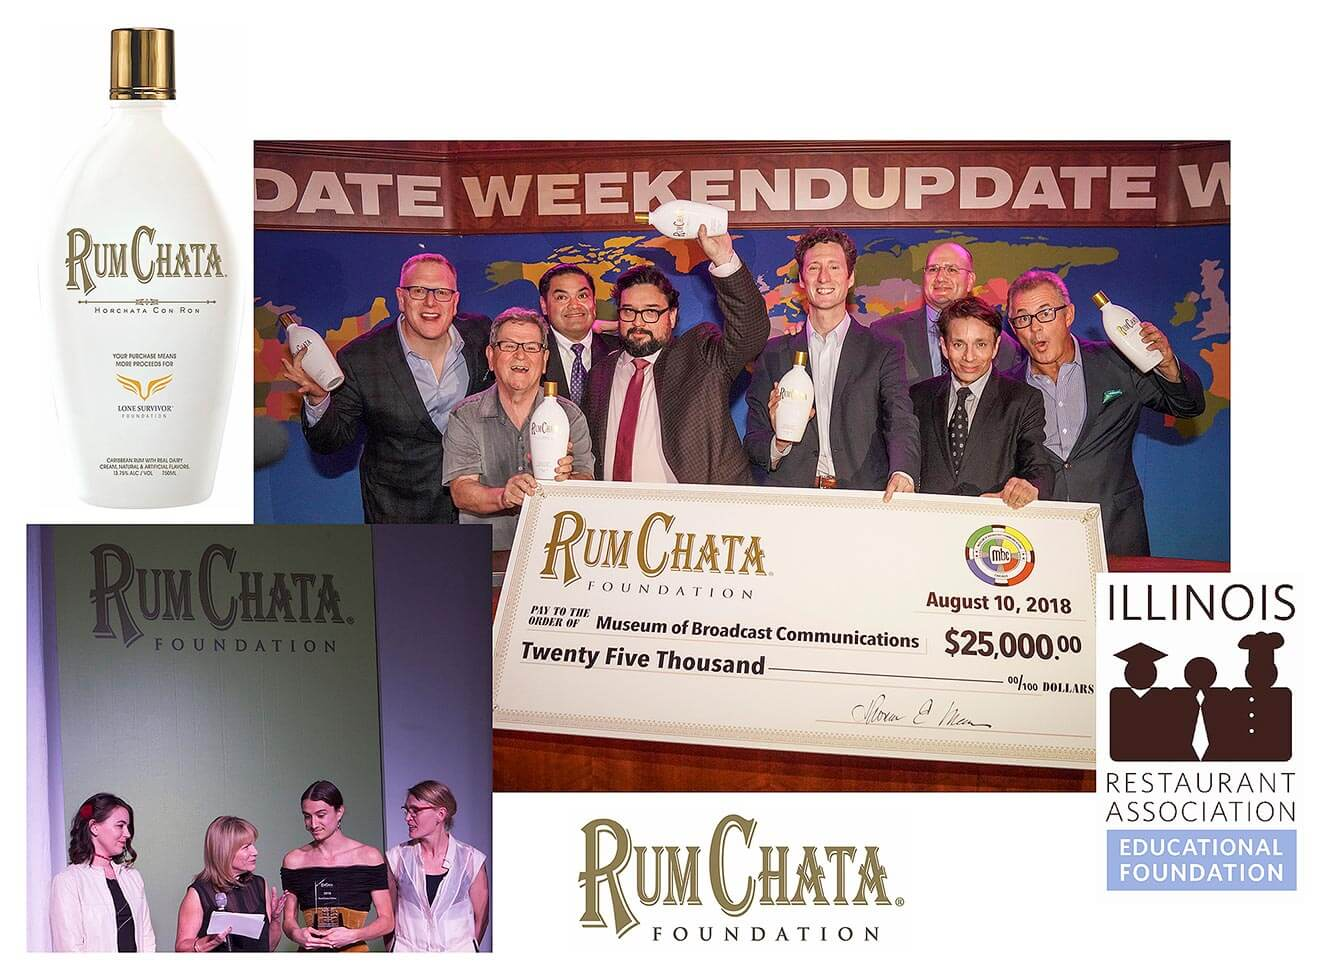 RumChata Foundation montage